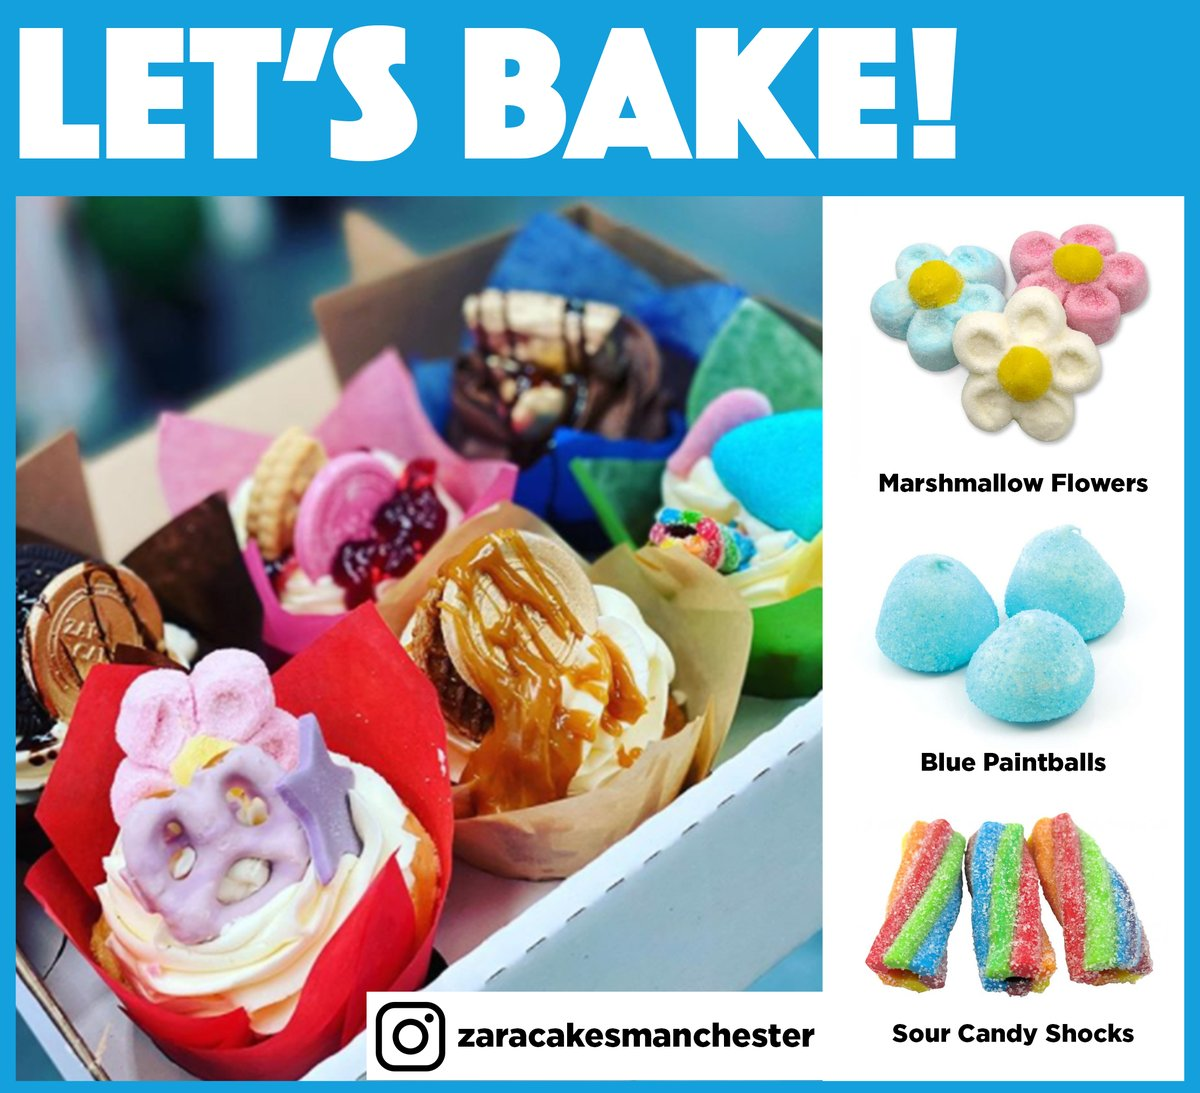 Bake Off is back on our screens tonight and it's time to check out another amazing creation! 👀  @CakesZara uses different pick and mix to make her cupcakes stand out from the rest, and we love them!   Check out our full range of pick and mix her 👉 https://t.co/lSy2qB2iqY https://t.co/Rm4lKurPRn